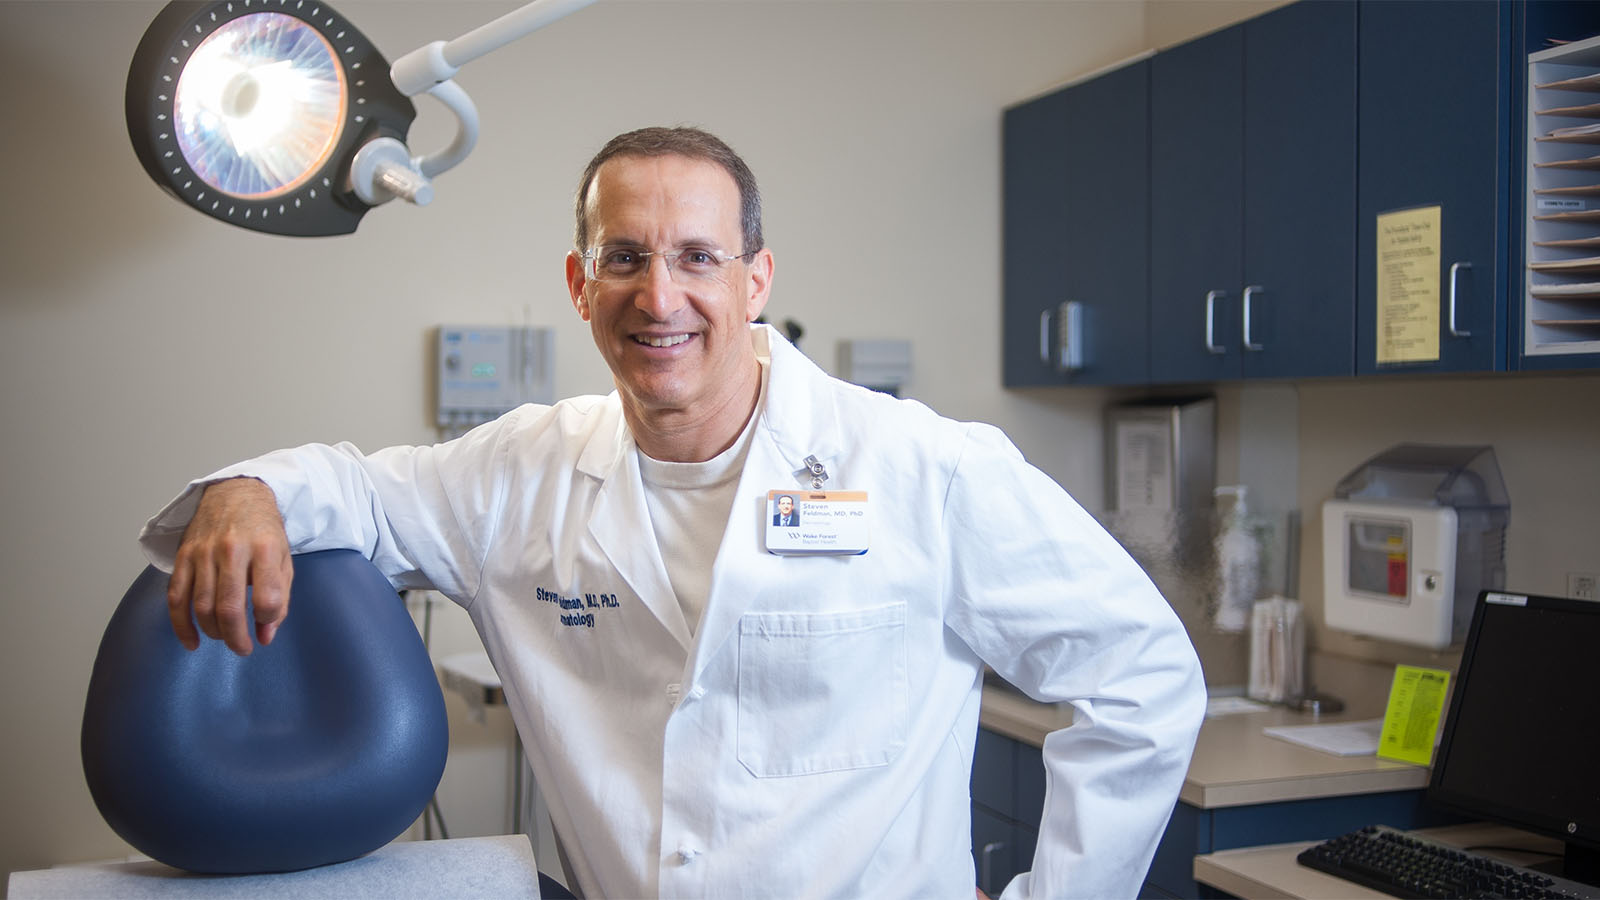 Steven Feldman, MD, PhD